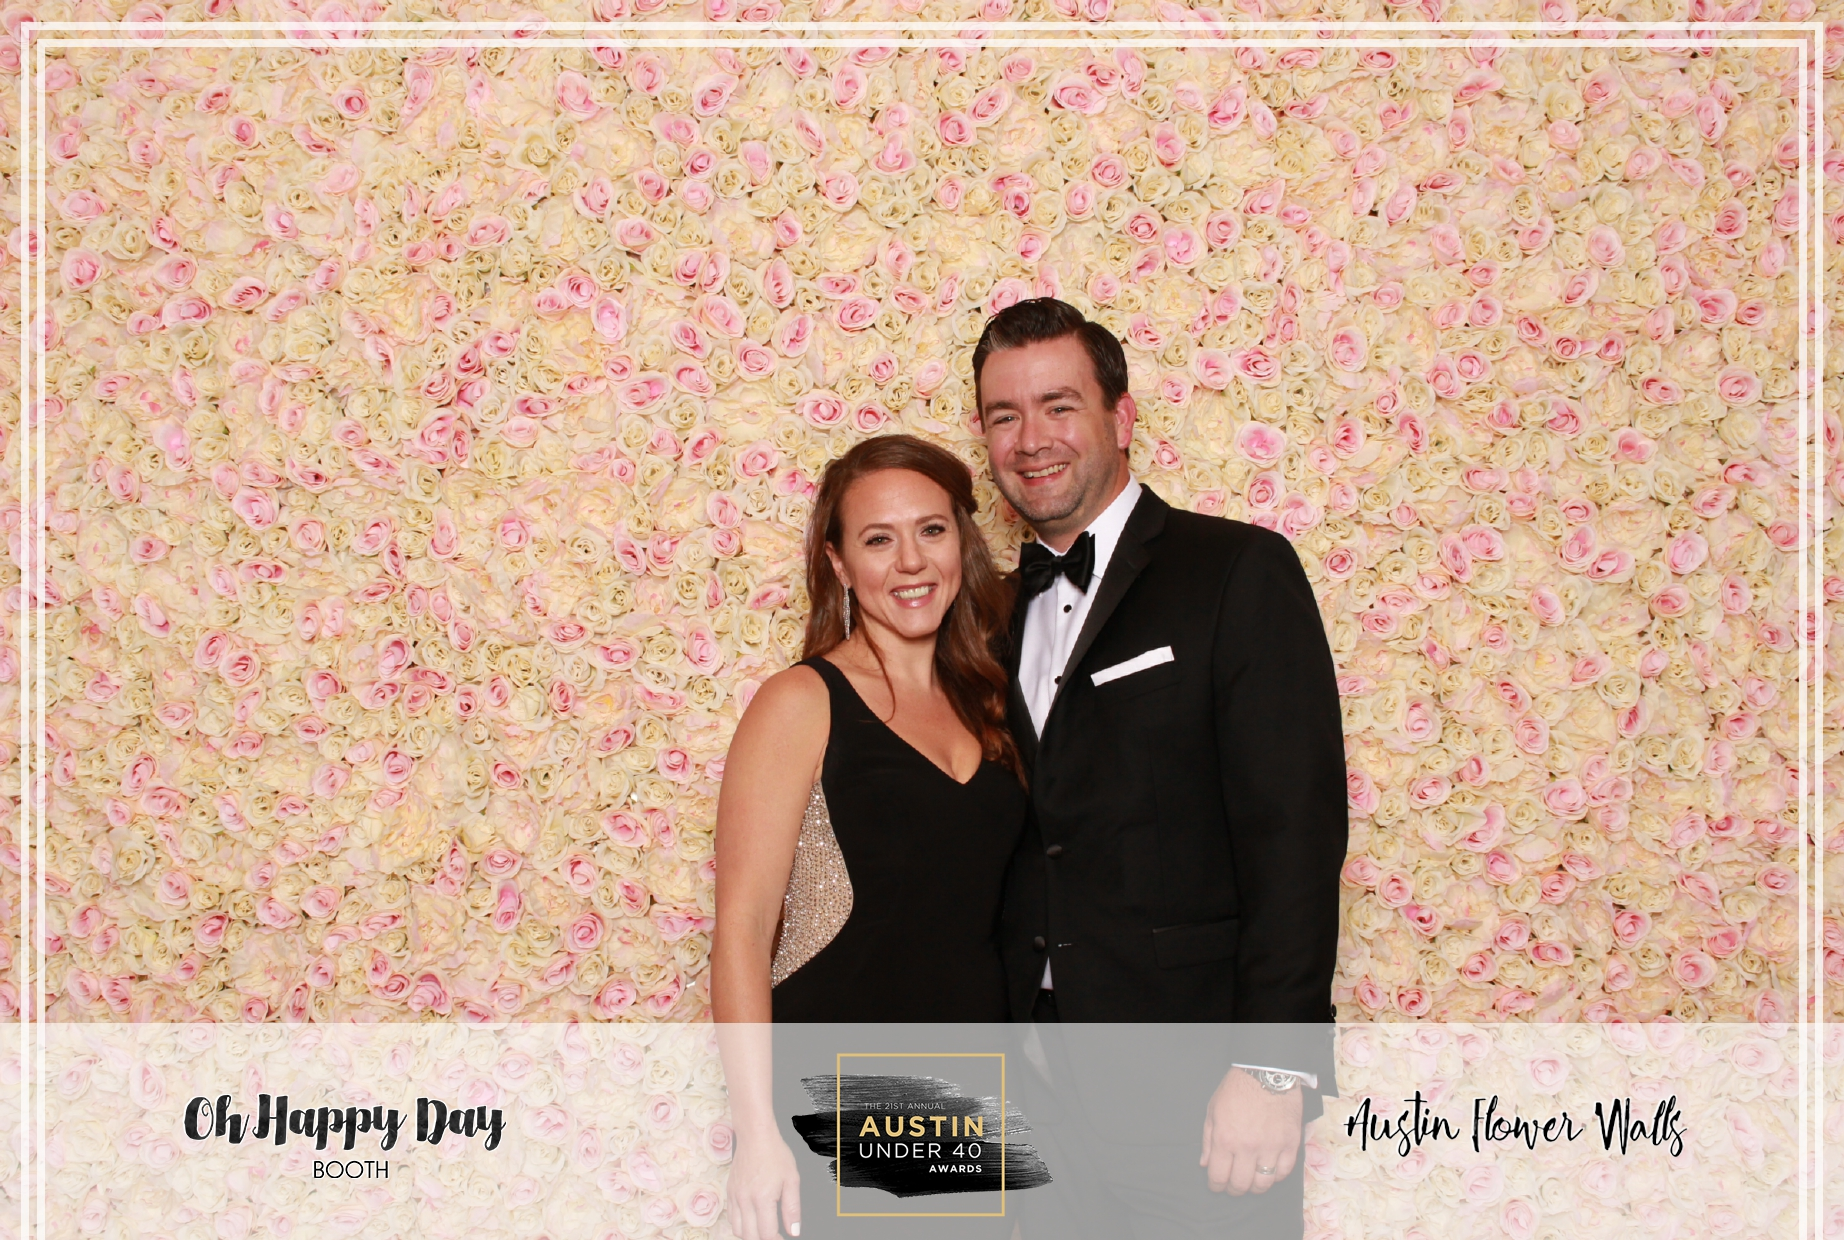 Oh Happy Day Booth - Austin Under 40-88.jpg